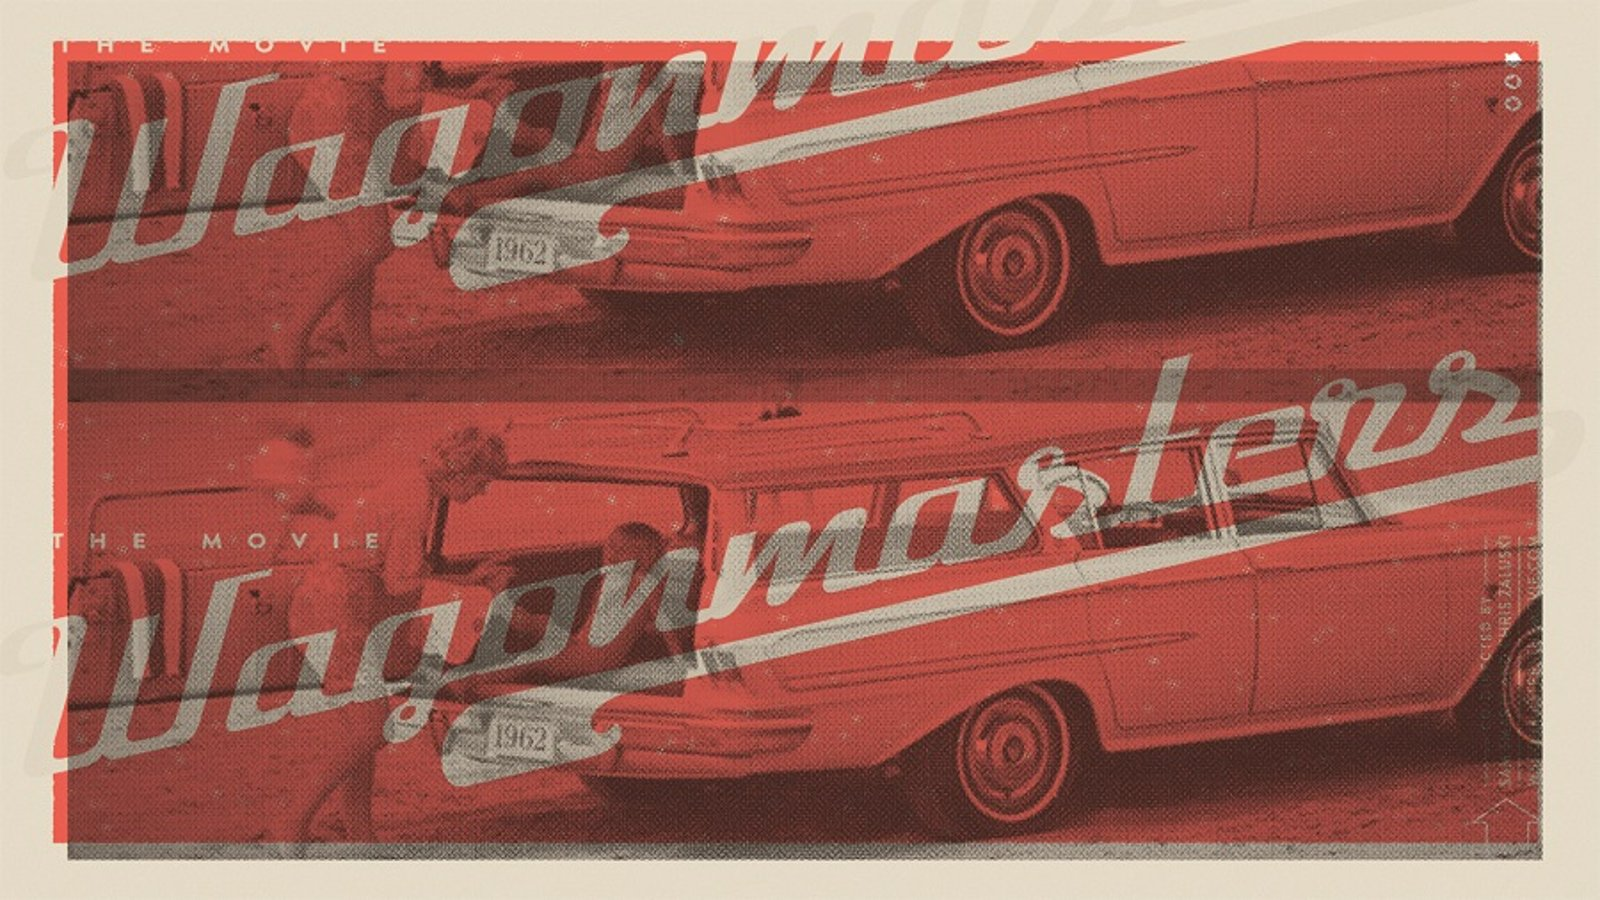 Wagonmasters - A Celebration of the American Station Wagon